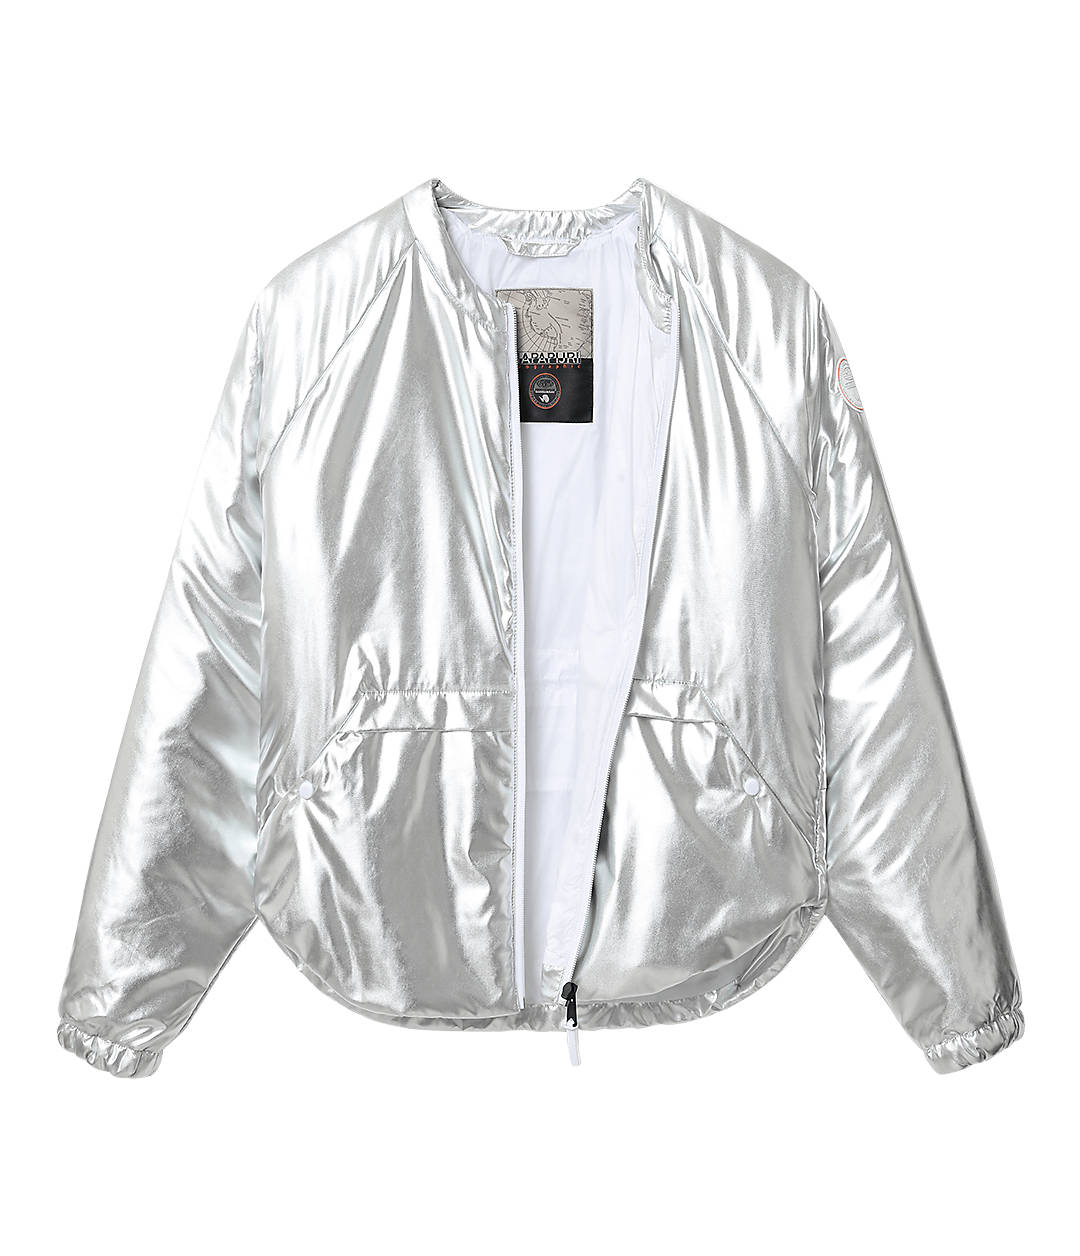 Kurzjacke Adoy Superlight Metallic